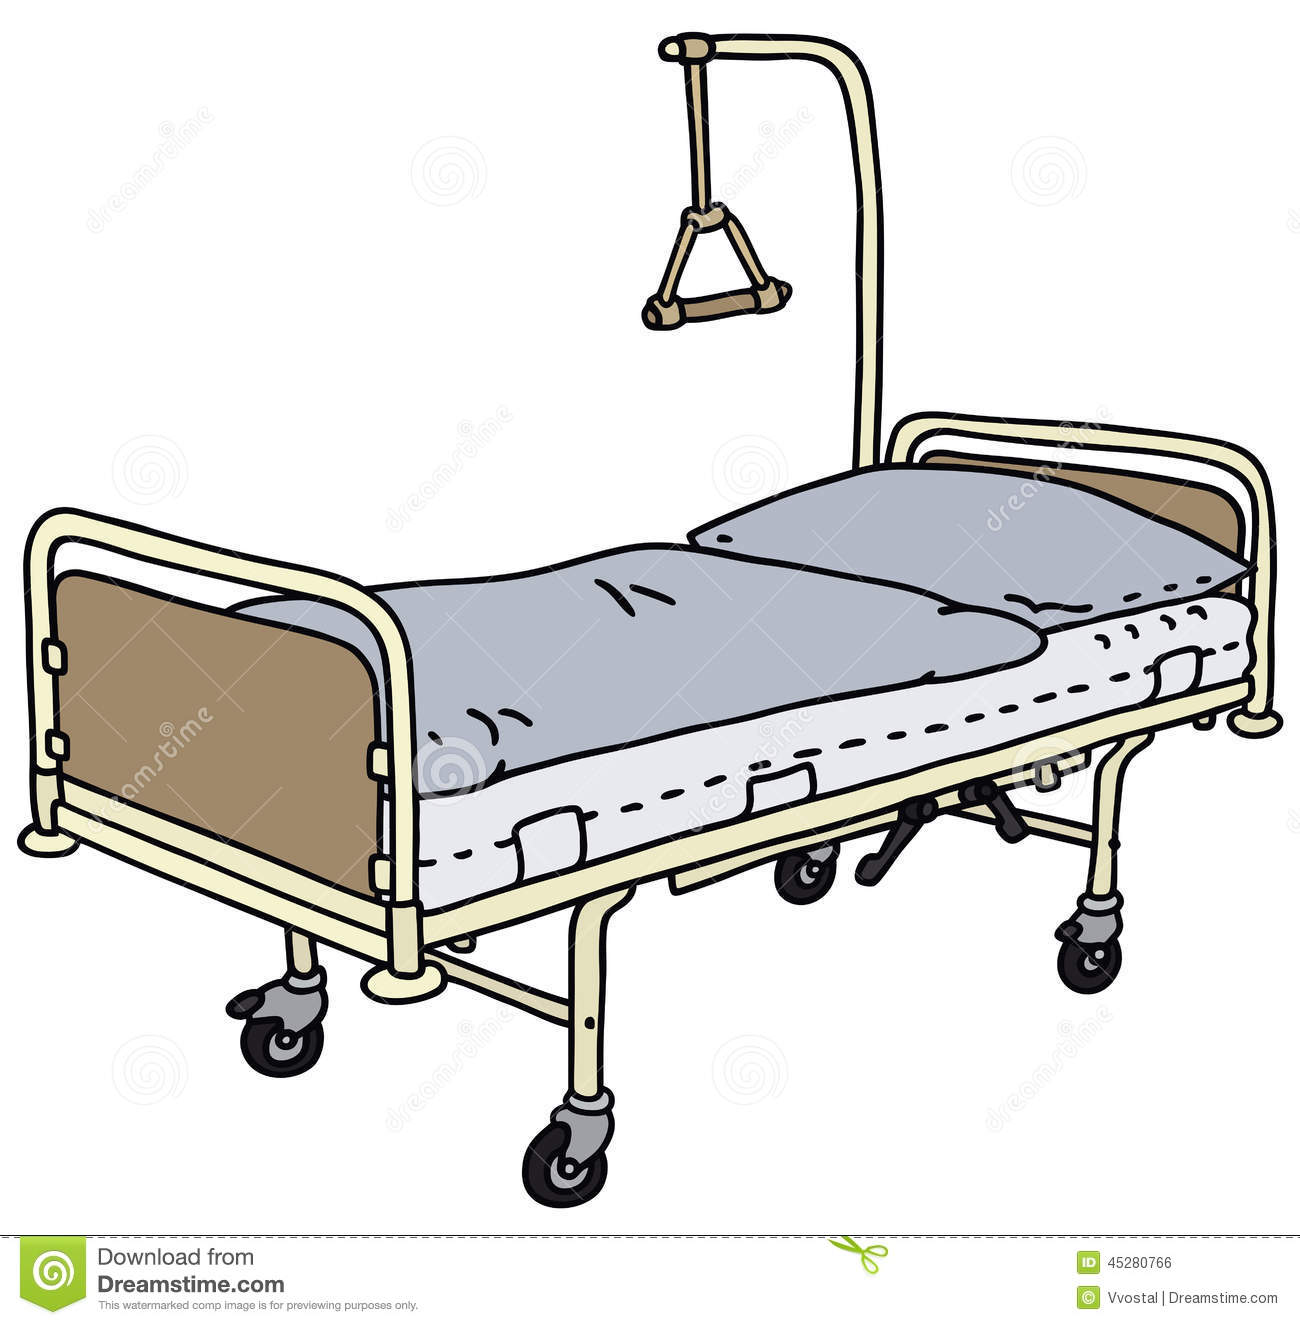 Hospital Bed Stock Vector - Image: 45280766